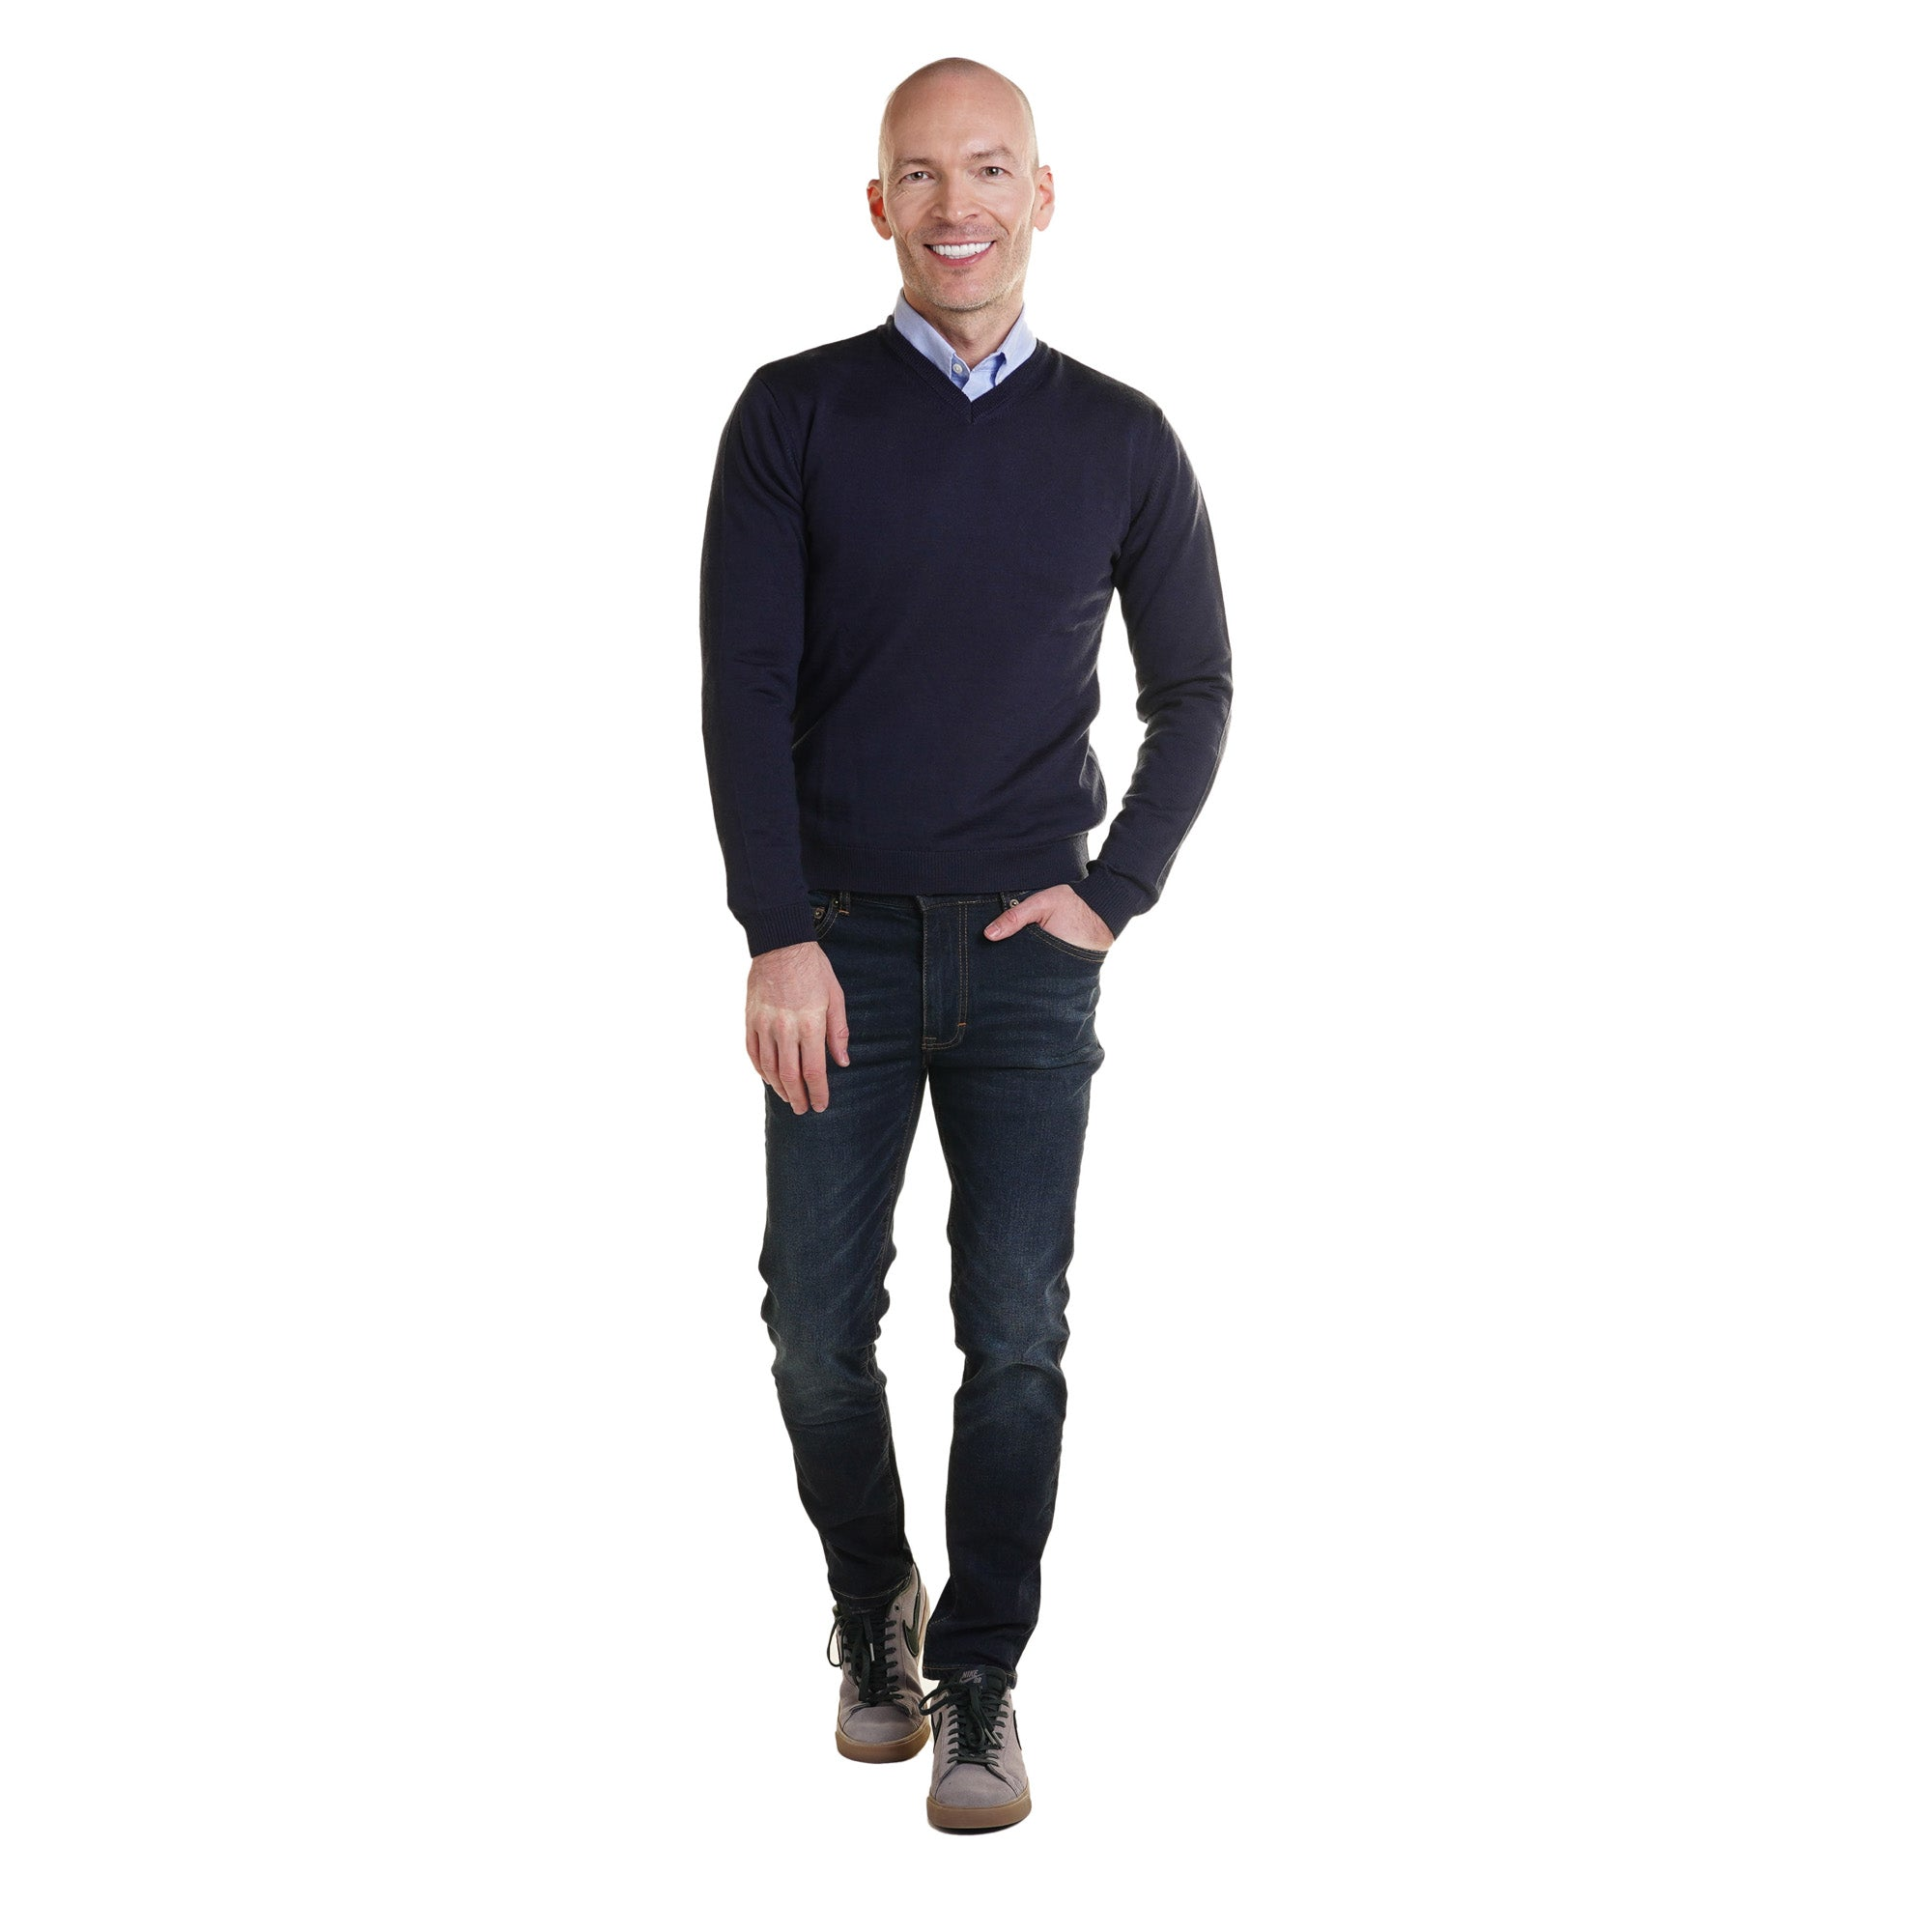 Zegna Merino Wool V Neck Sweaters - Navy